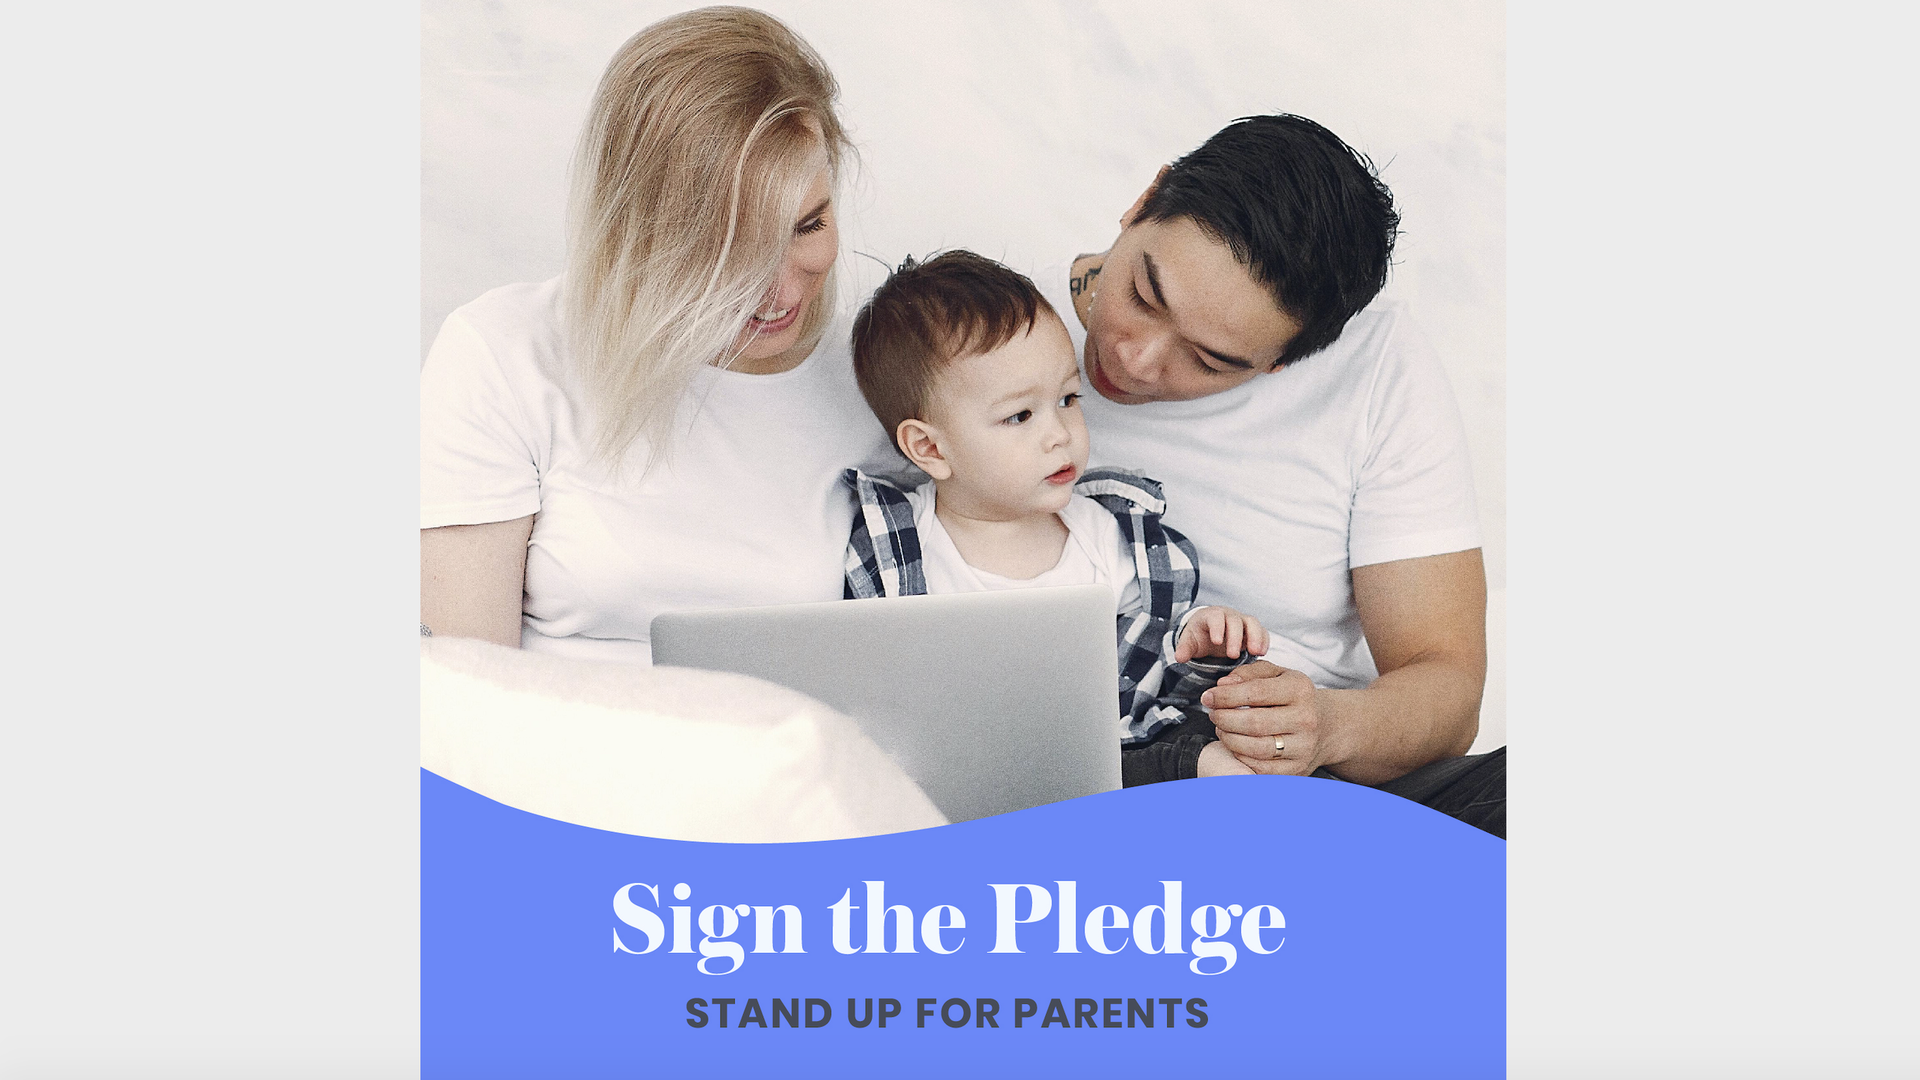 A flyer with a photo of a family asking people to sign a pledge.